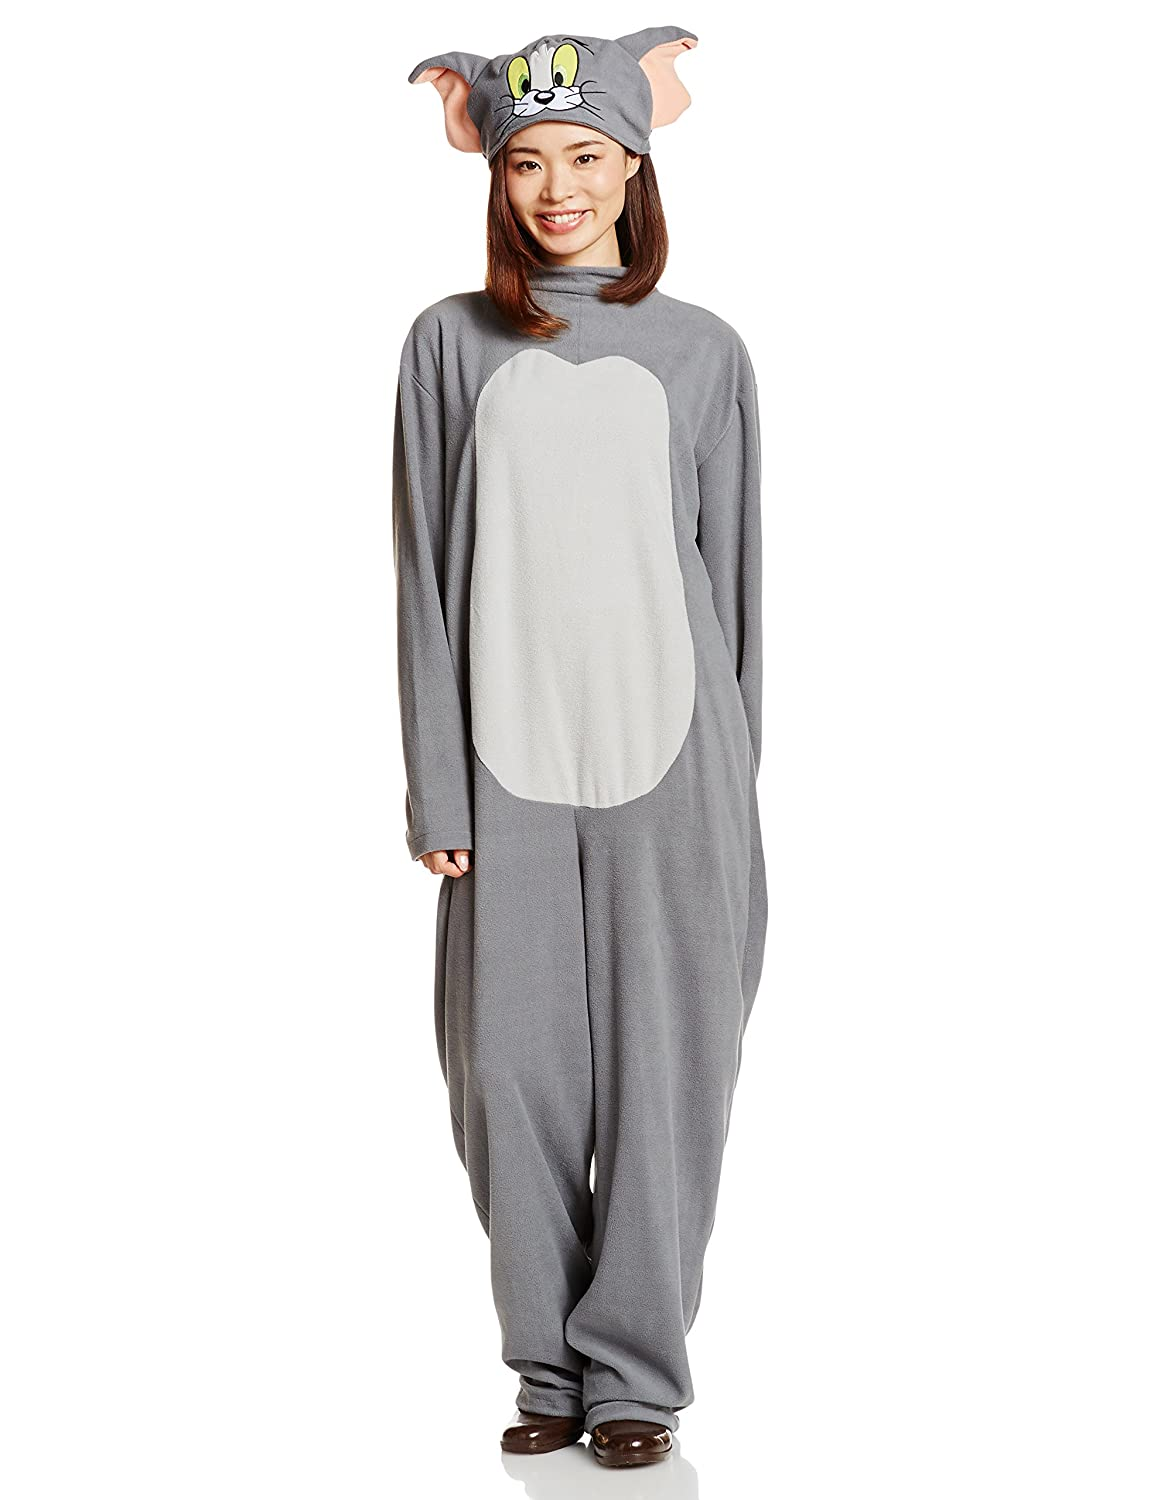 Tom and Jerry Tom costume unisex